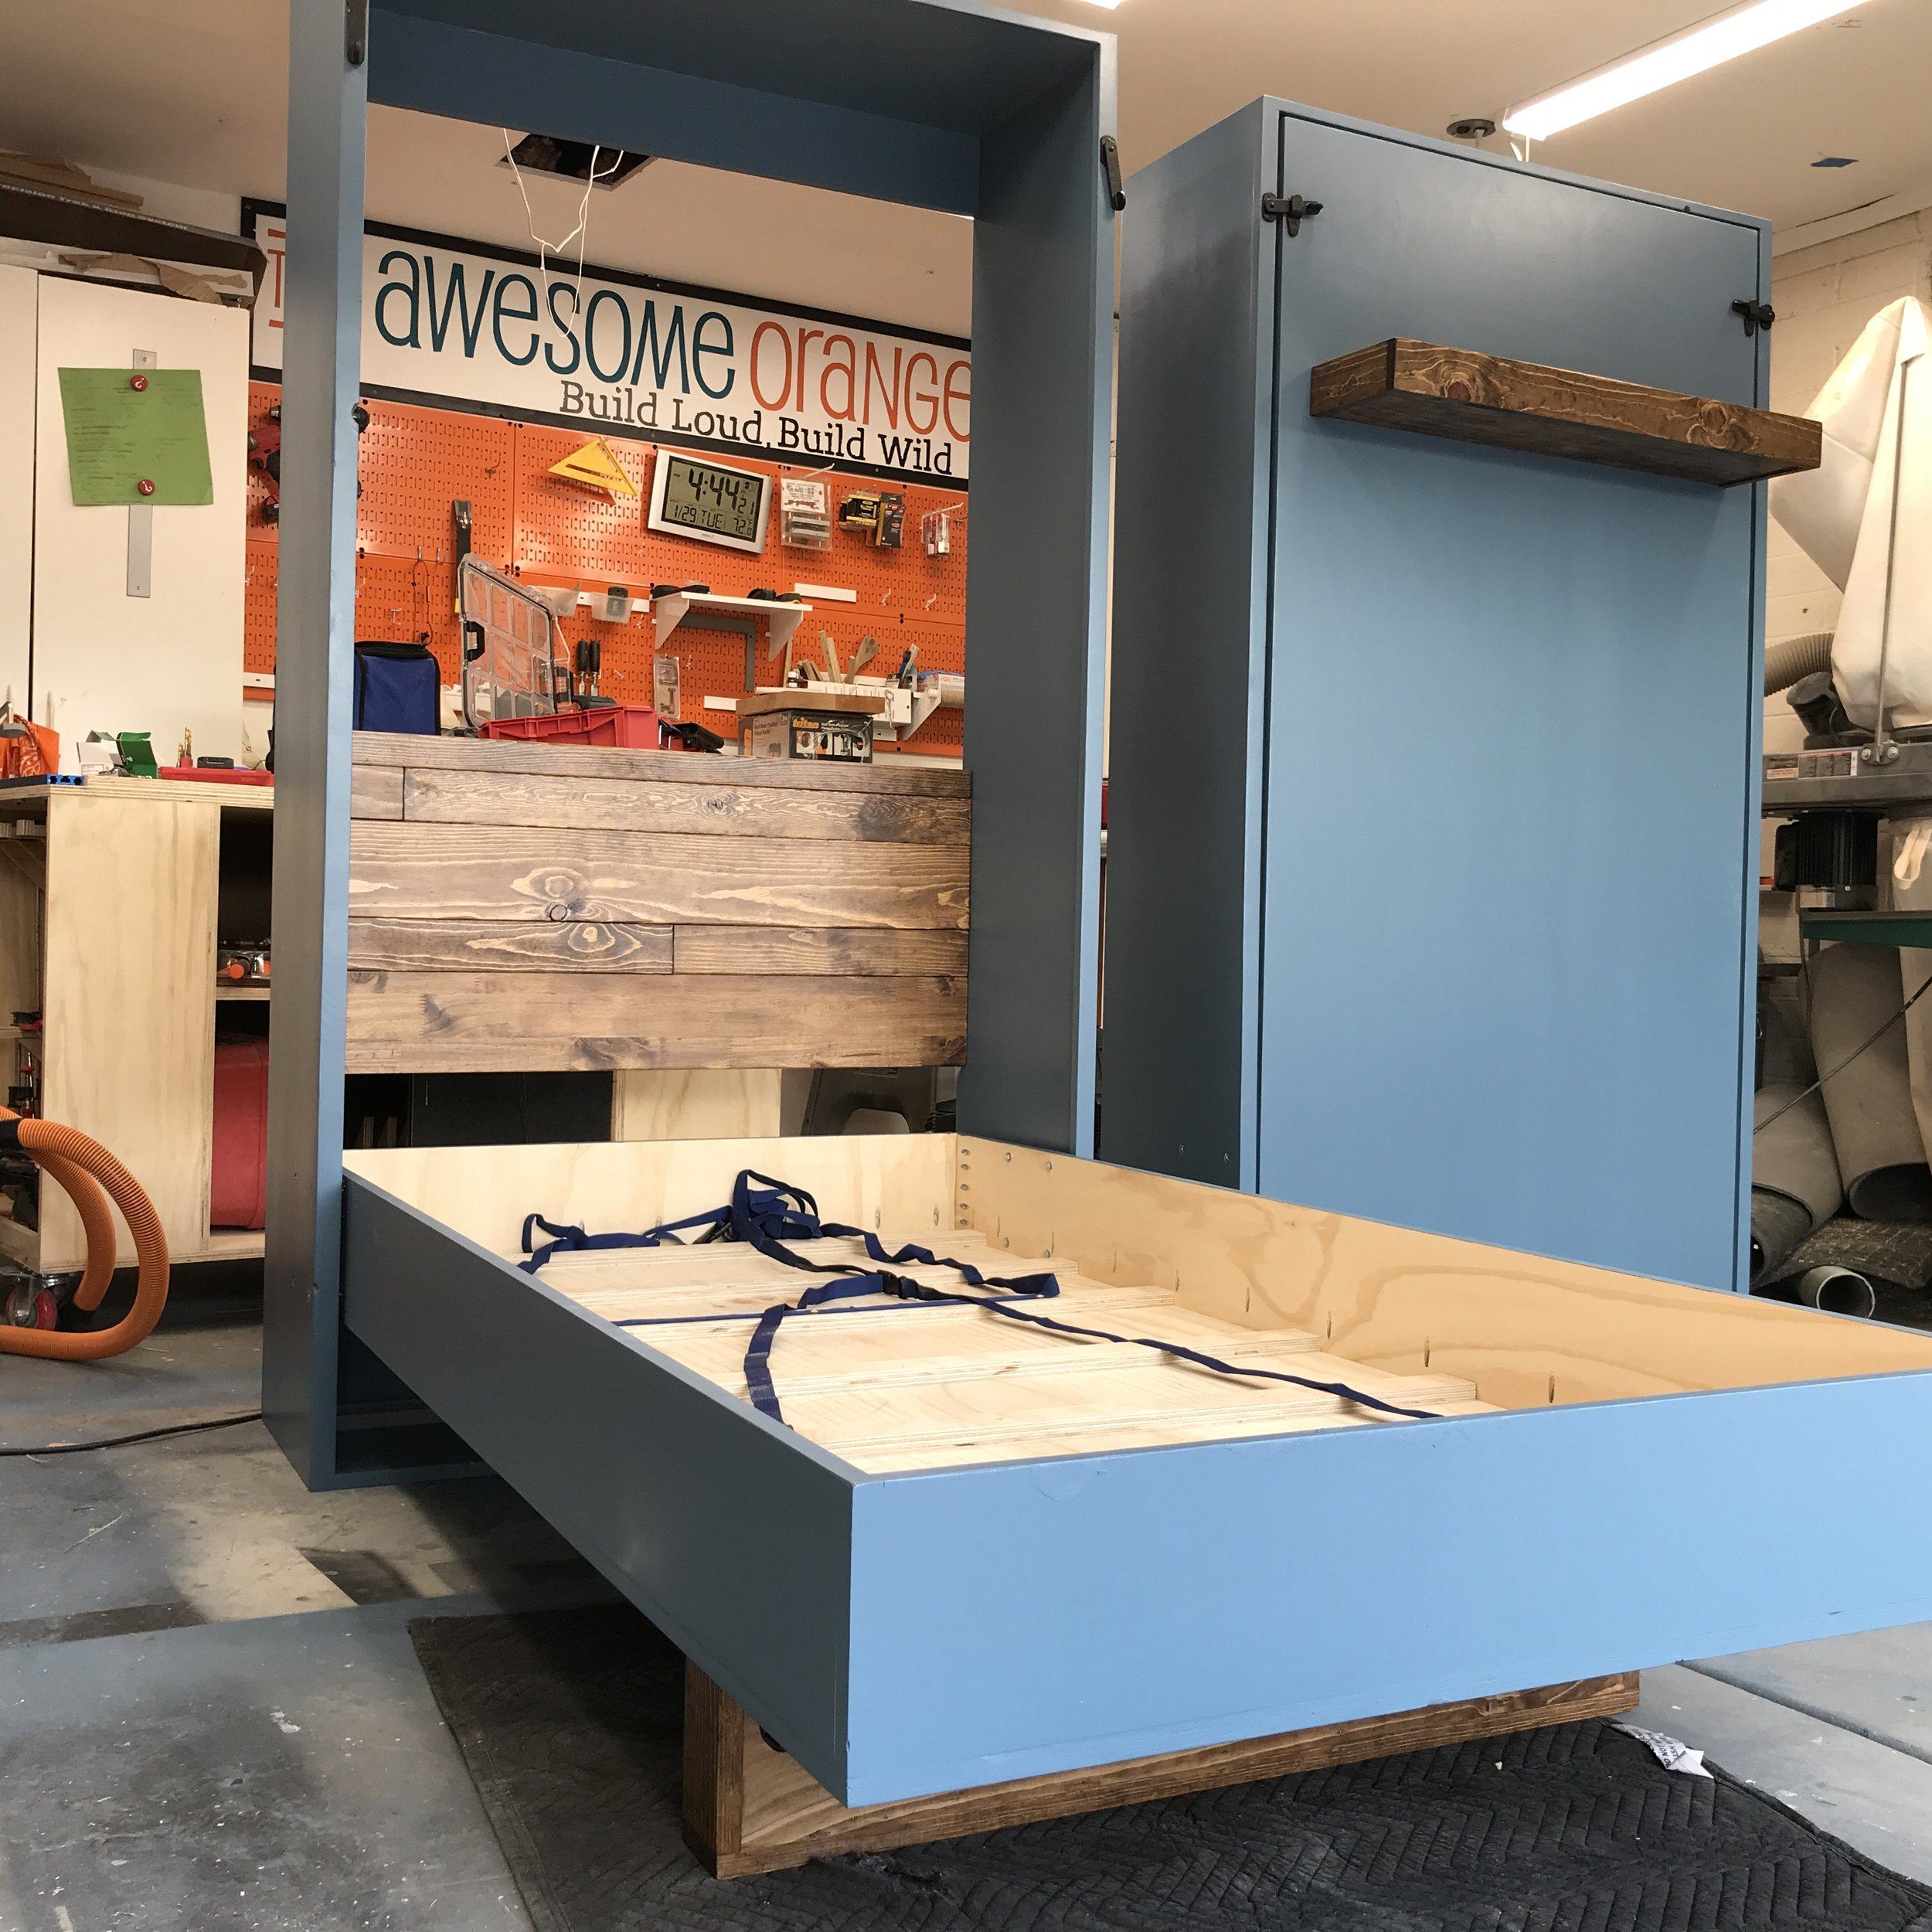 Diy Twin Murphy Bed Plans The Awesome Orange